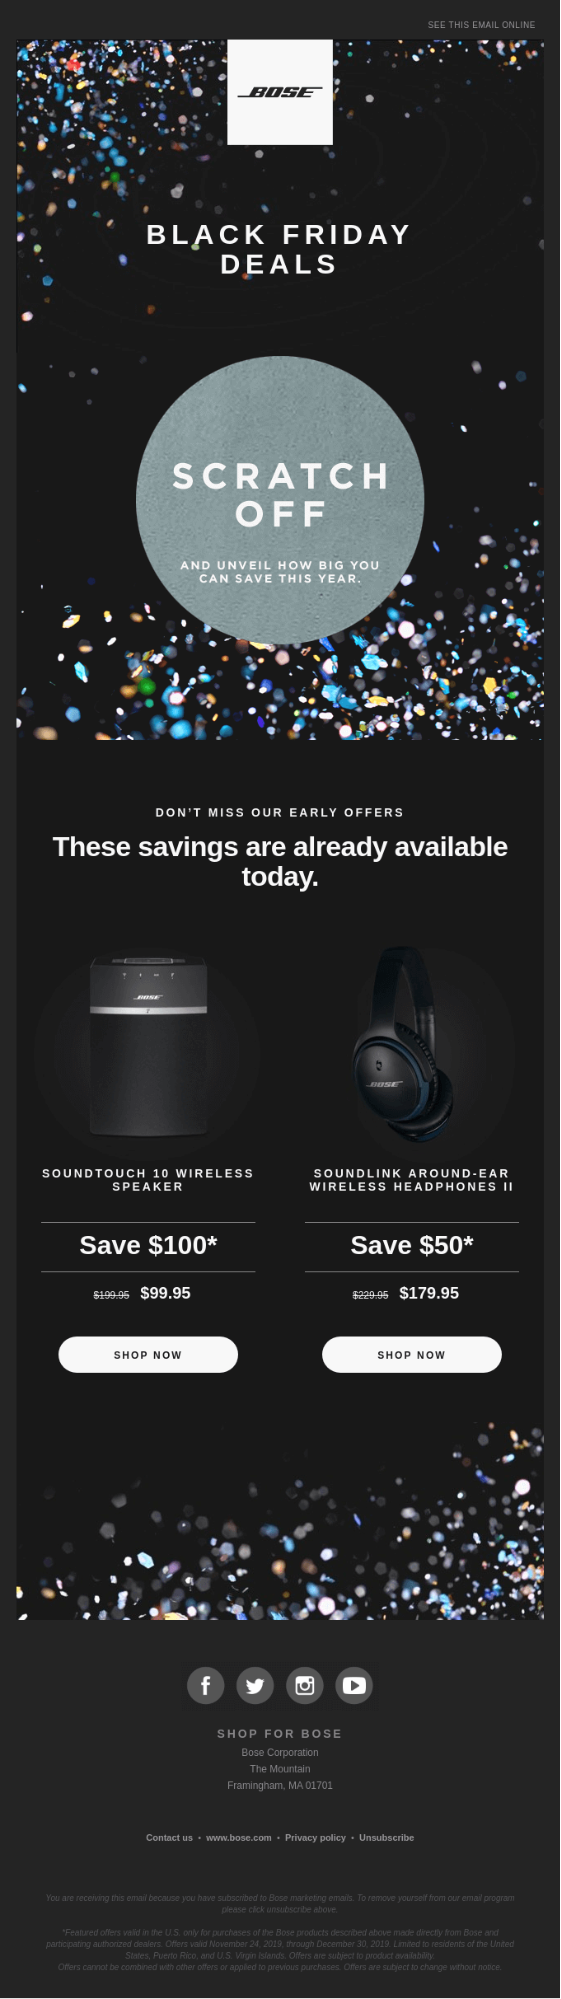 Bose Black Friday Email